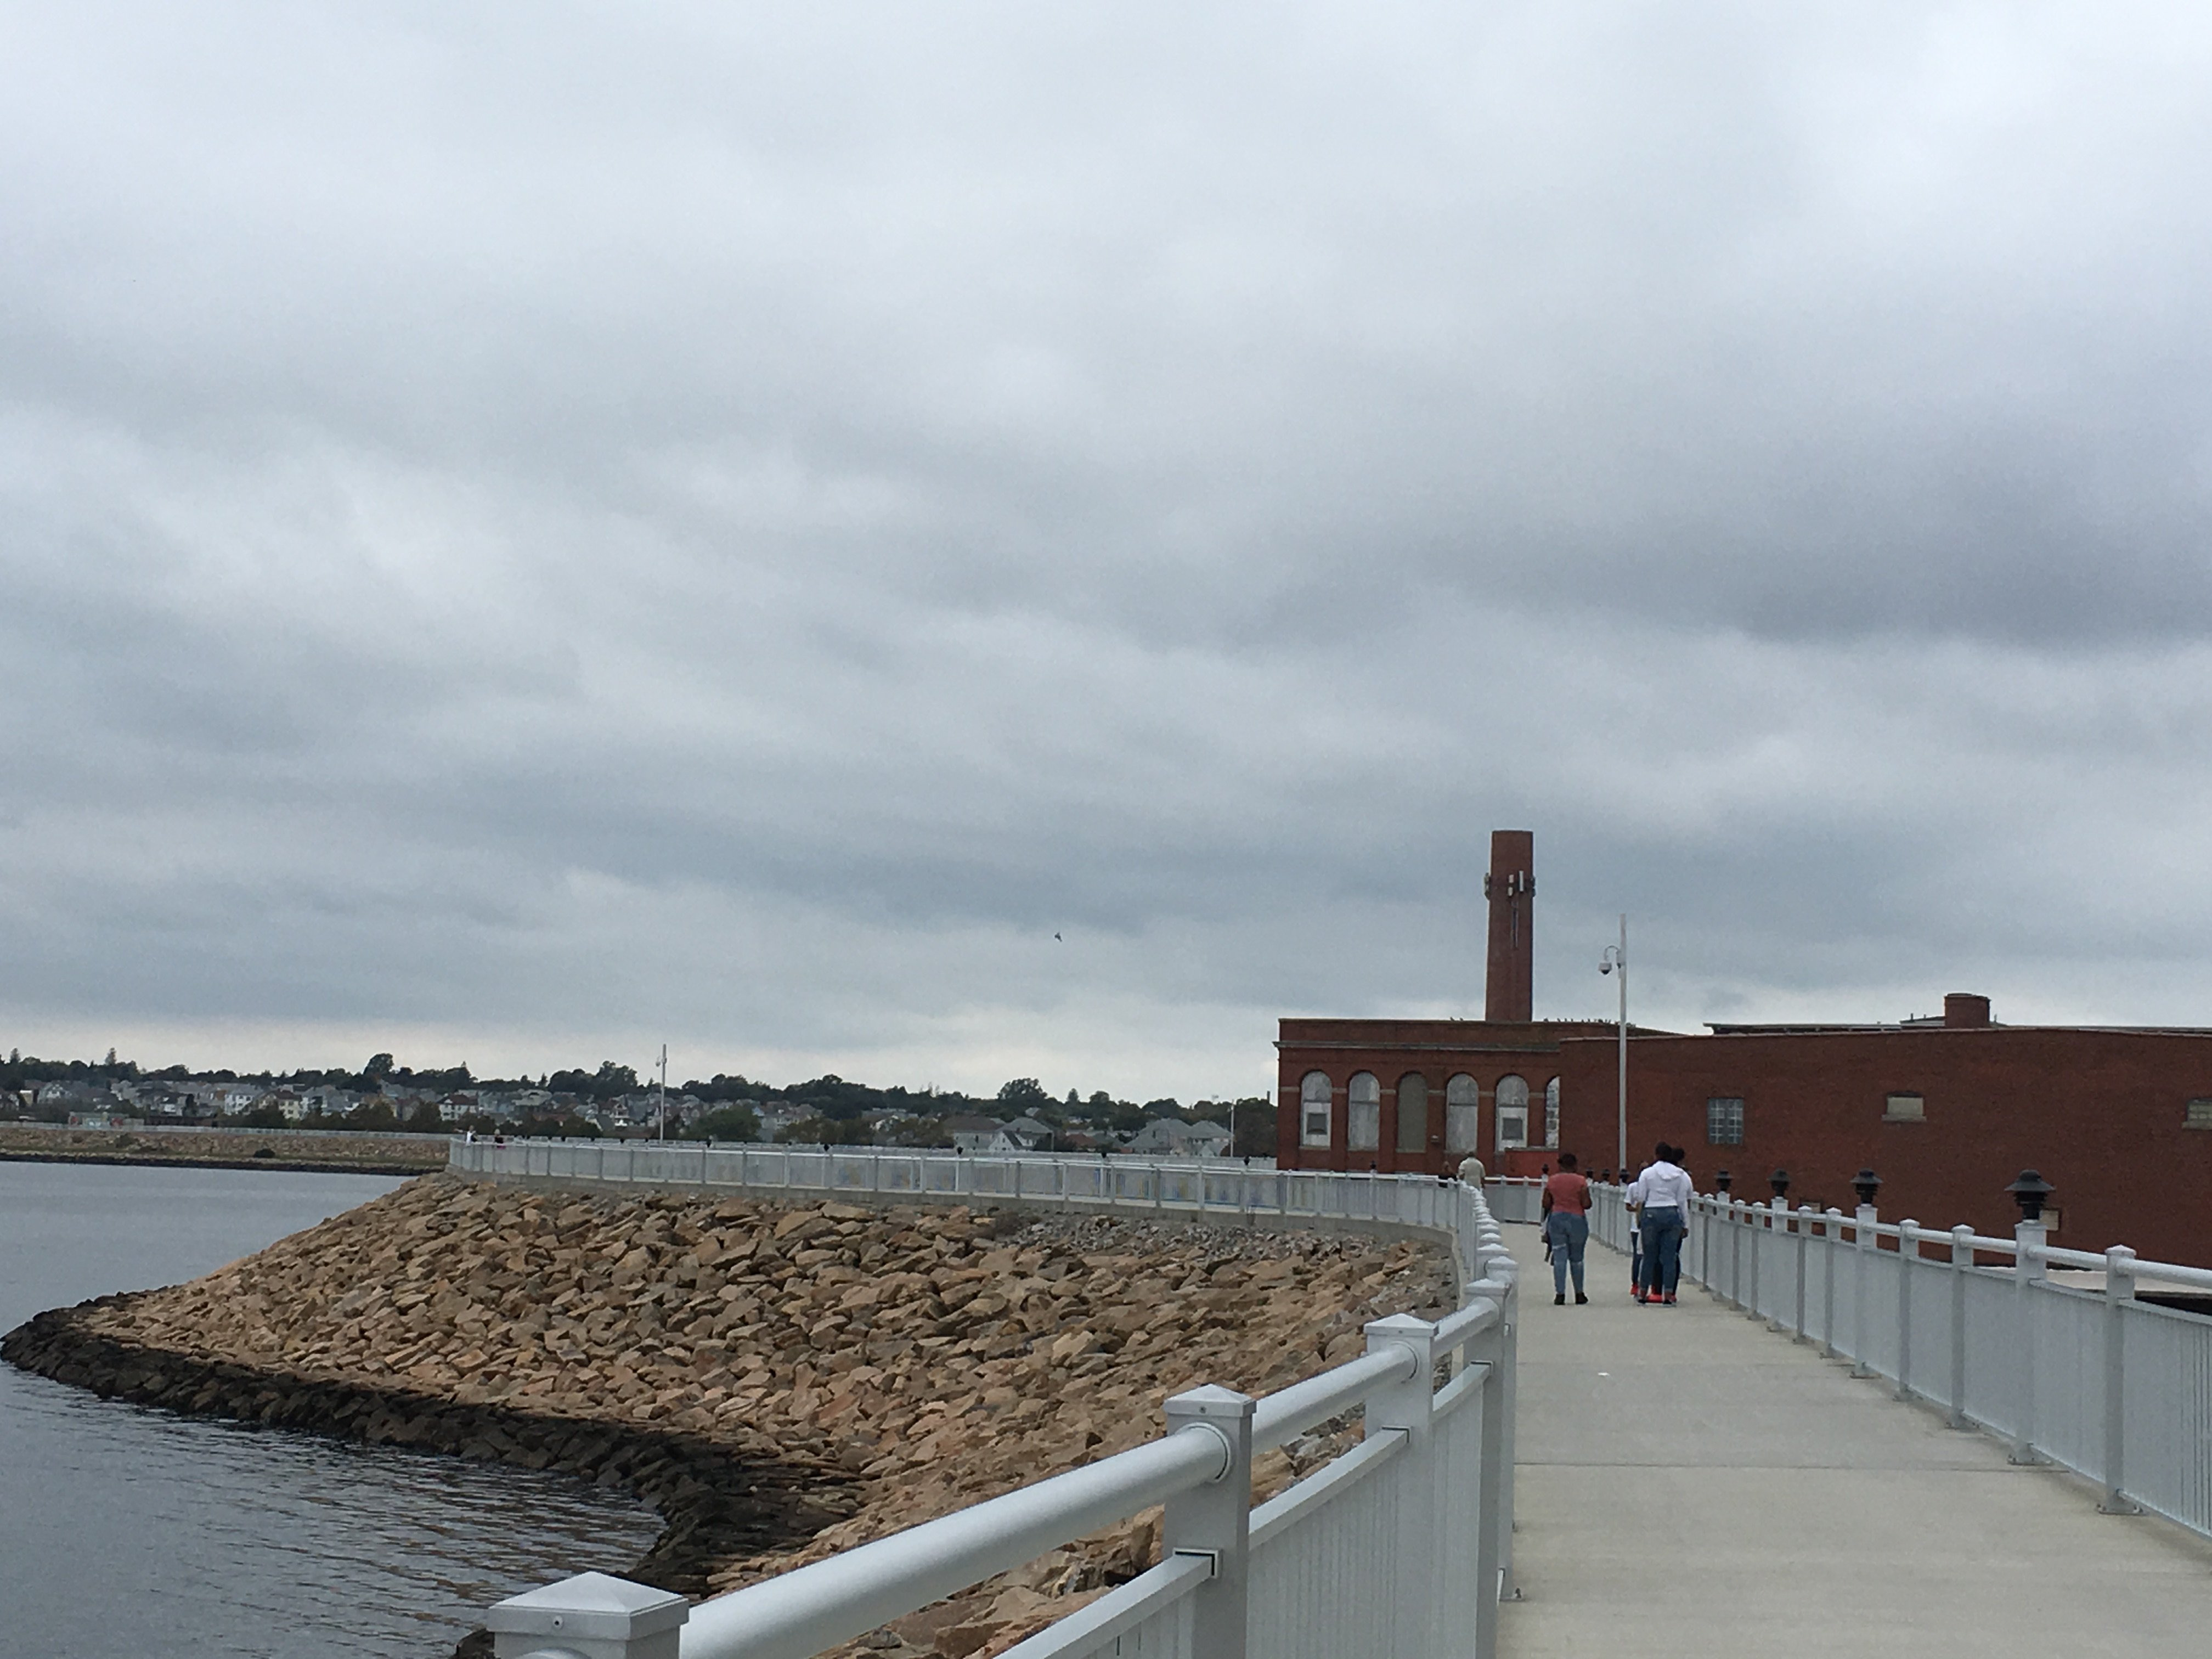 A pedestrian walkway in New Bedford